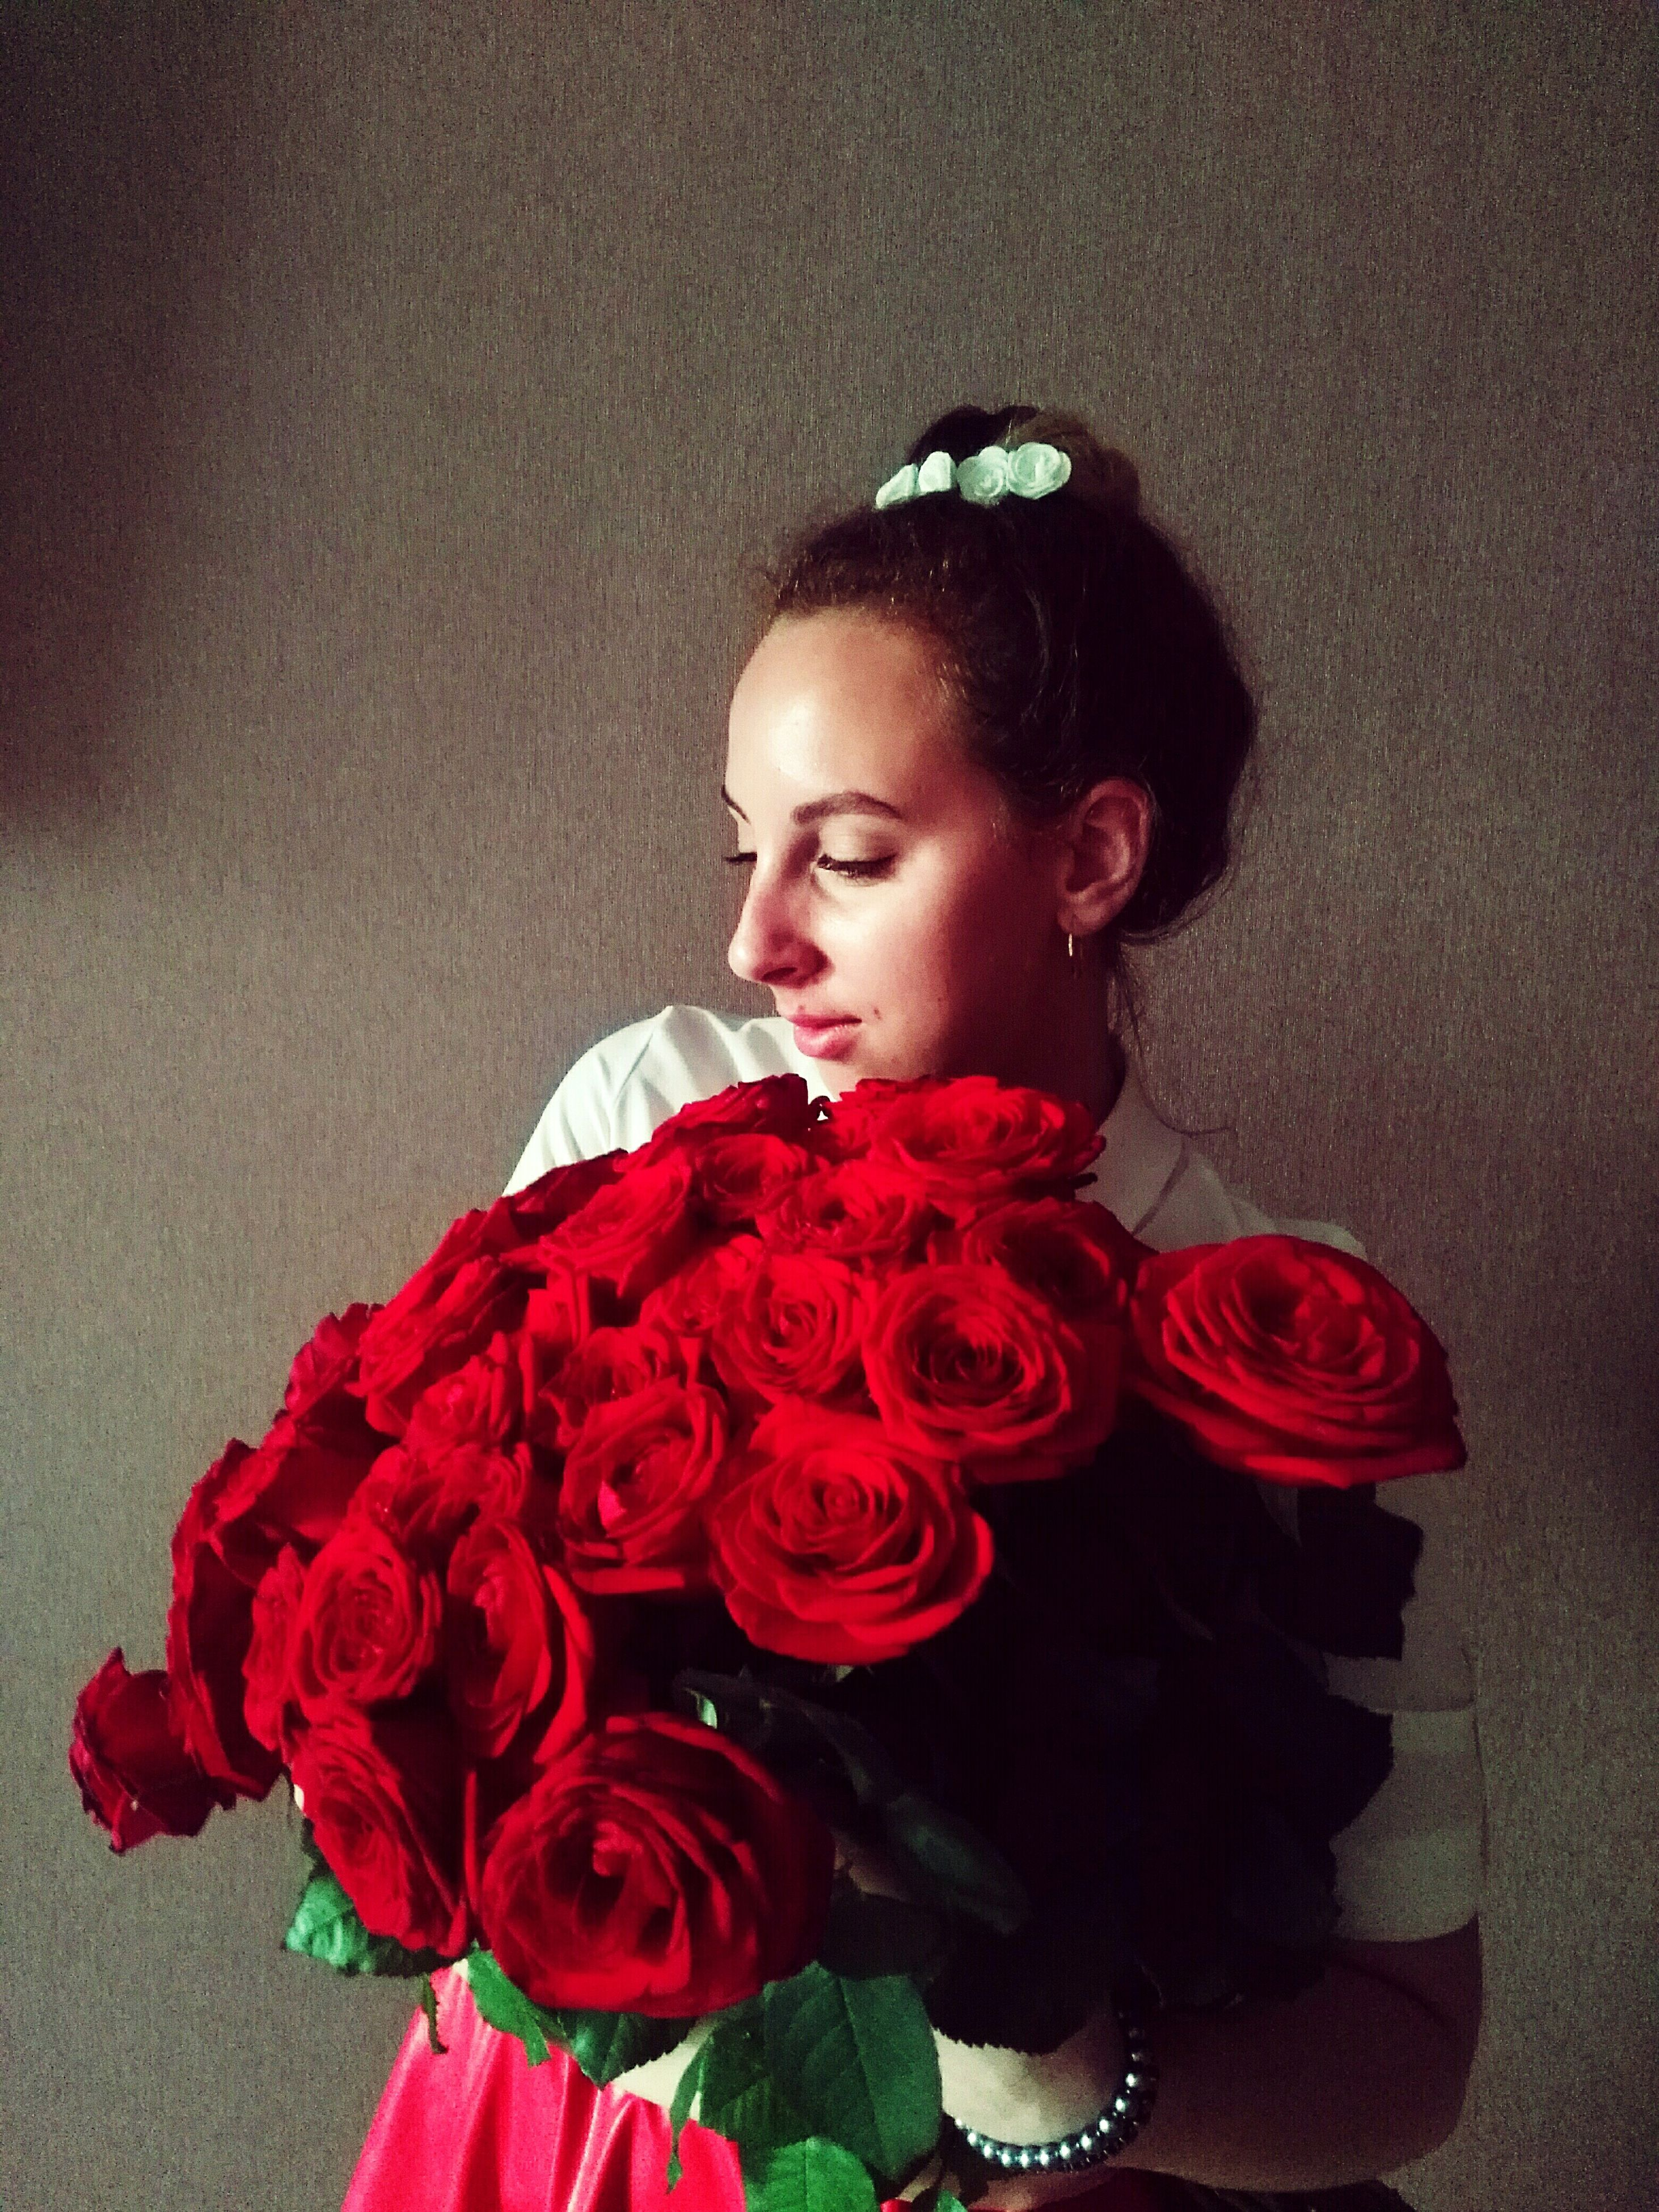 flower, rose - flower, one person, red, bouquet, indoors, beautiful woman, young women, young adult, real people, wearing flowers, standing, lifestyles, beauty, fragility, beauty in nature, freshness, nature, flower head, bride, day, close-up, people